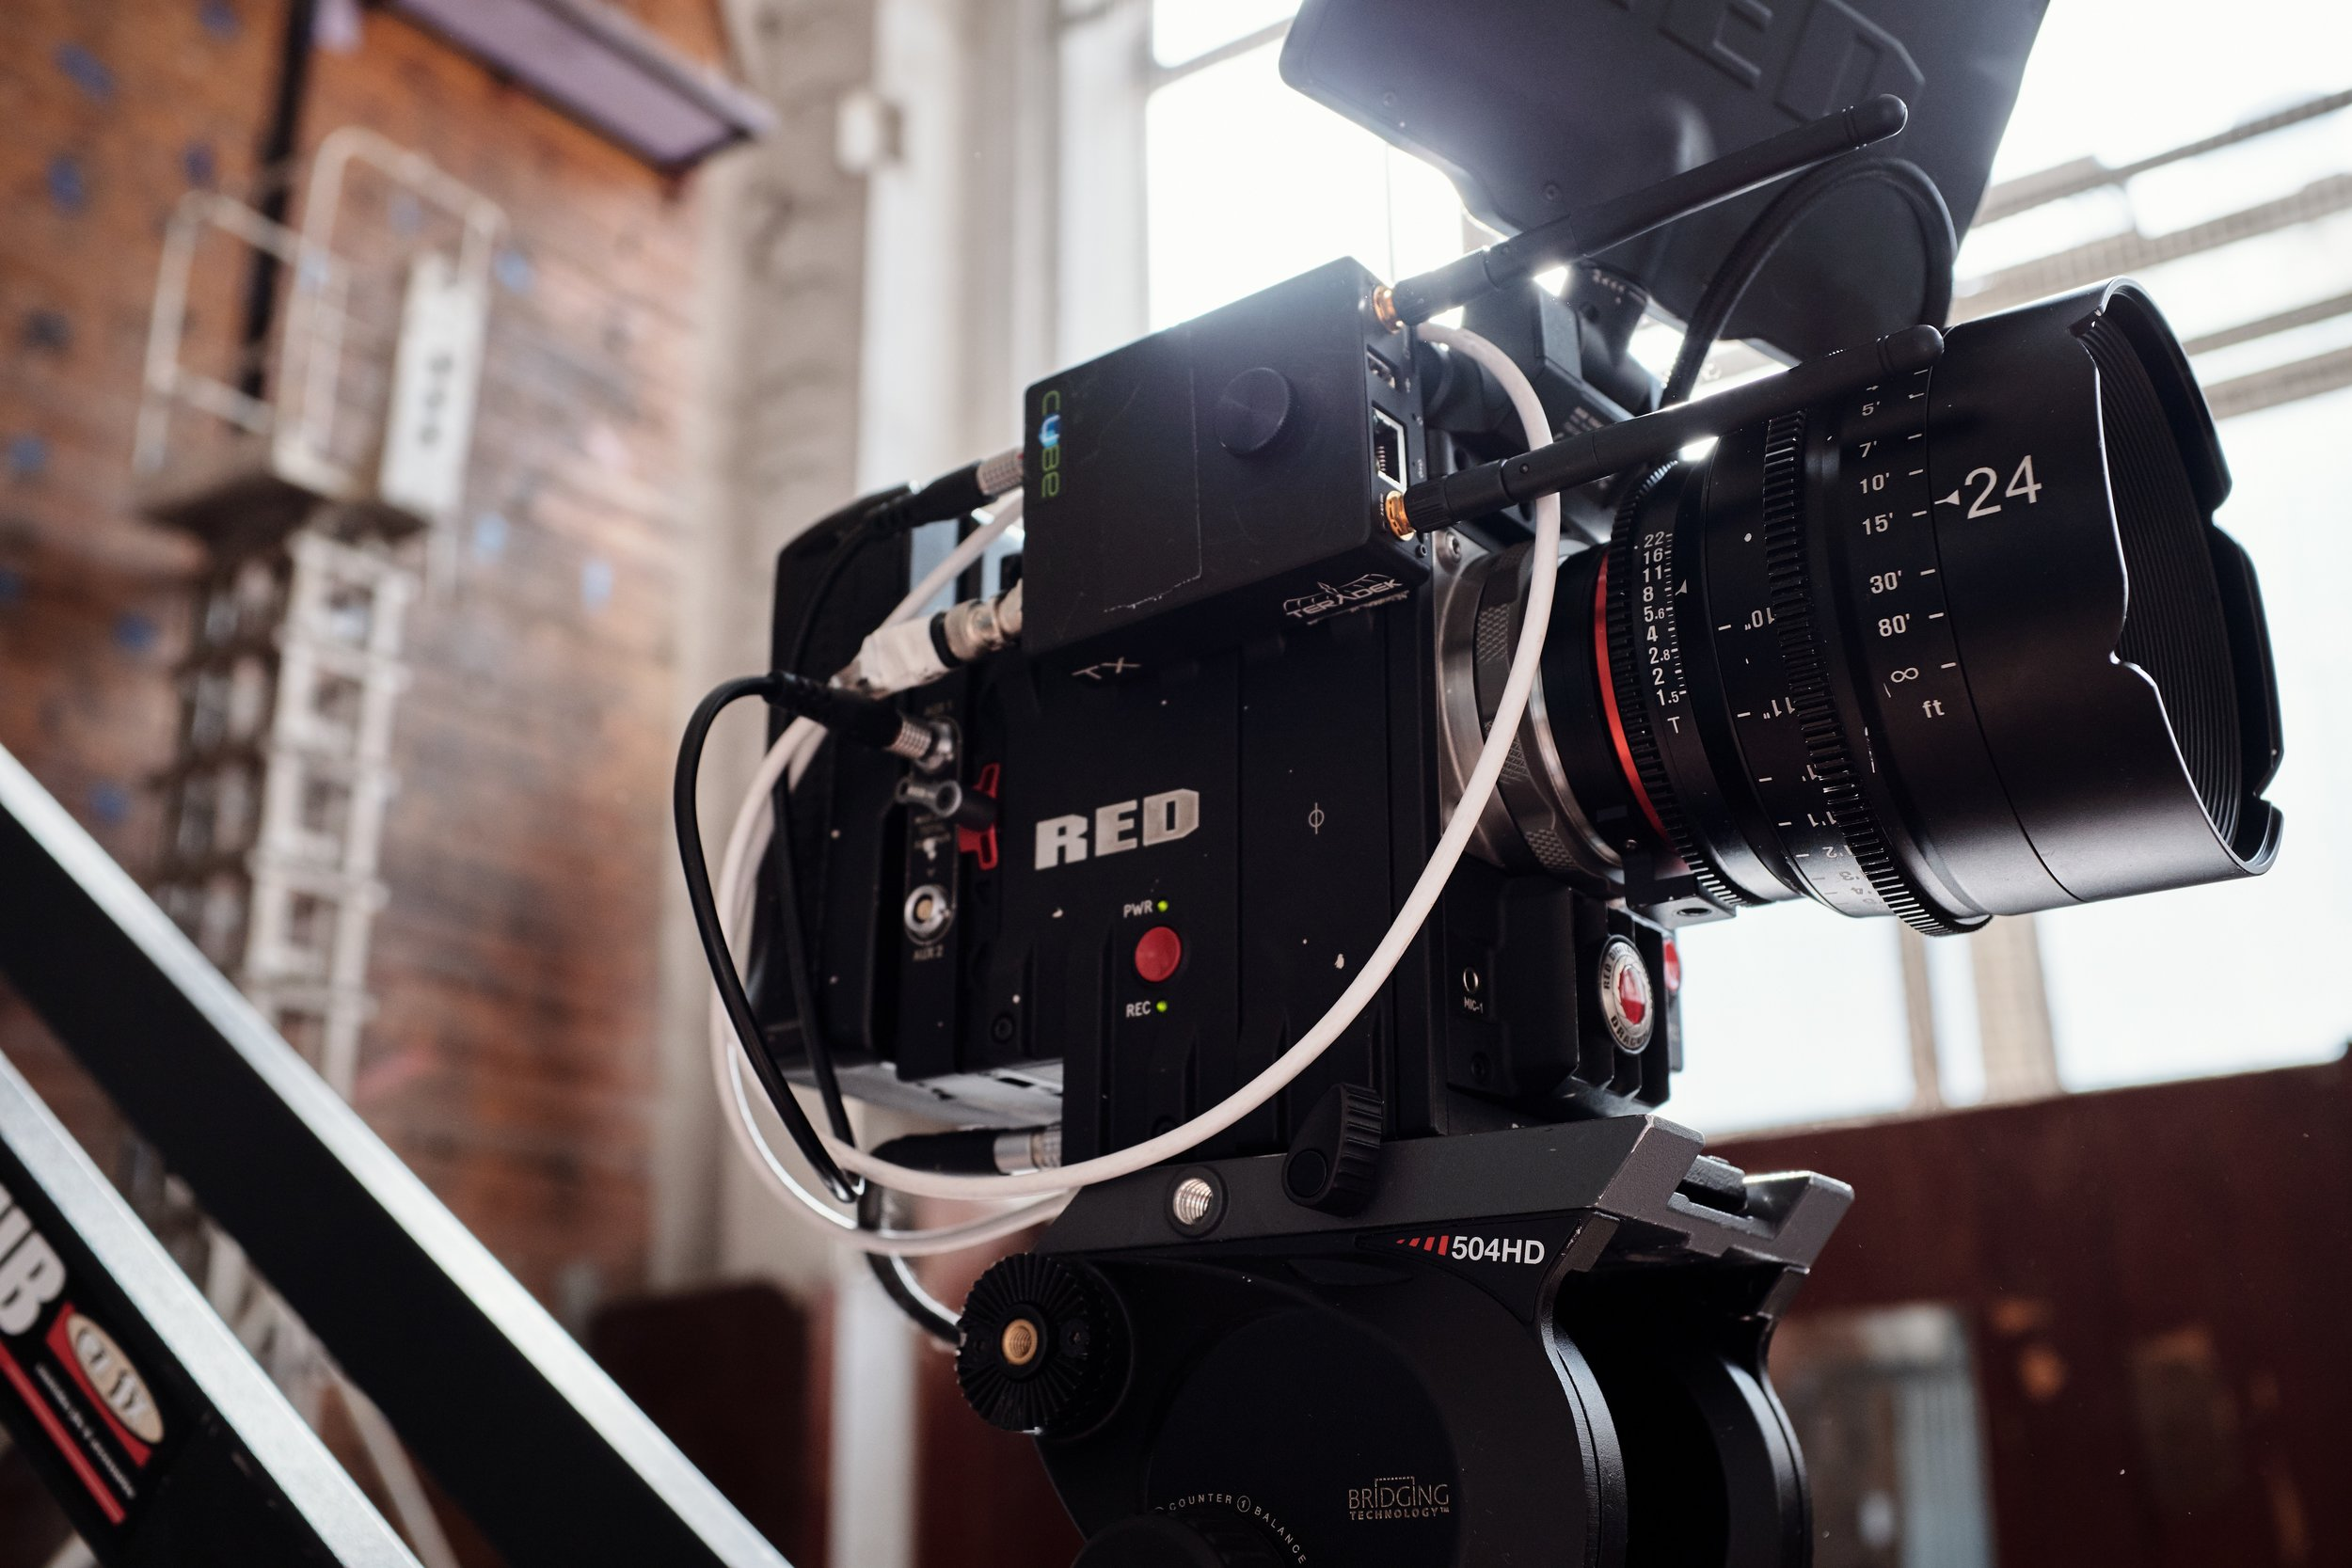 VIDEOGRAPHY - We offer a wide range of videography services including, directing, editing, coloring and much more! Wether you need a promotional video advertisement for your business or a wedding video we can get it done.